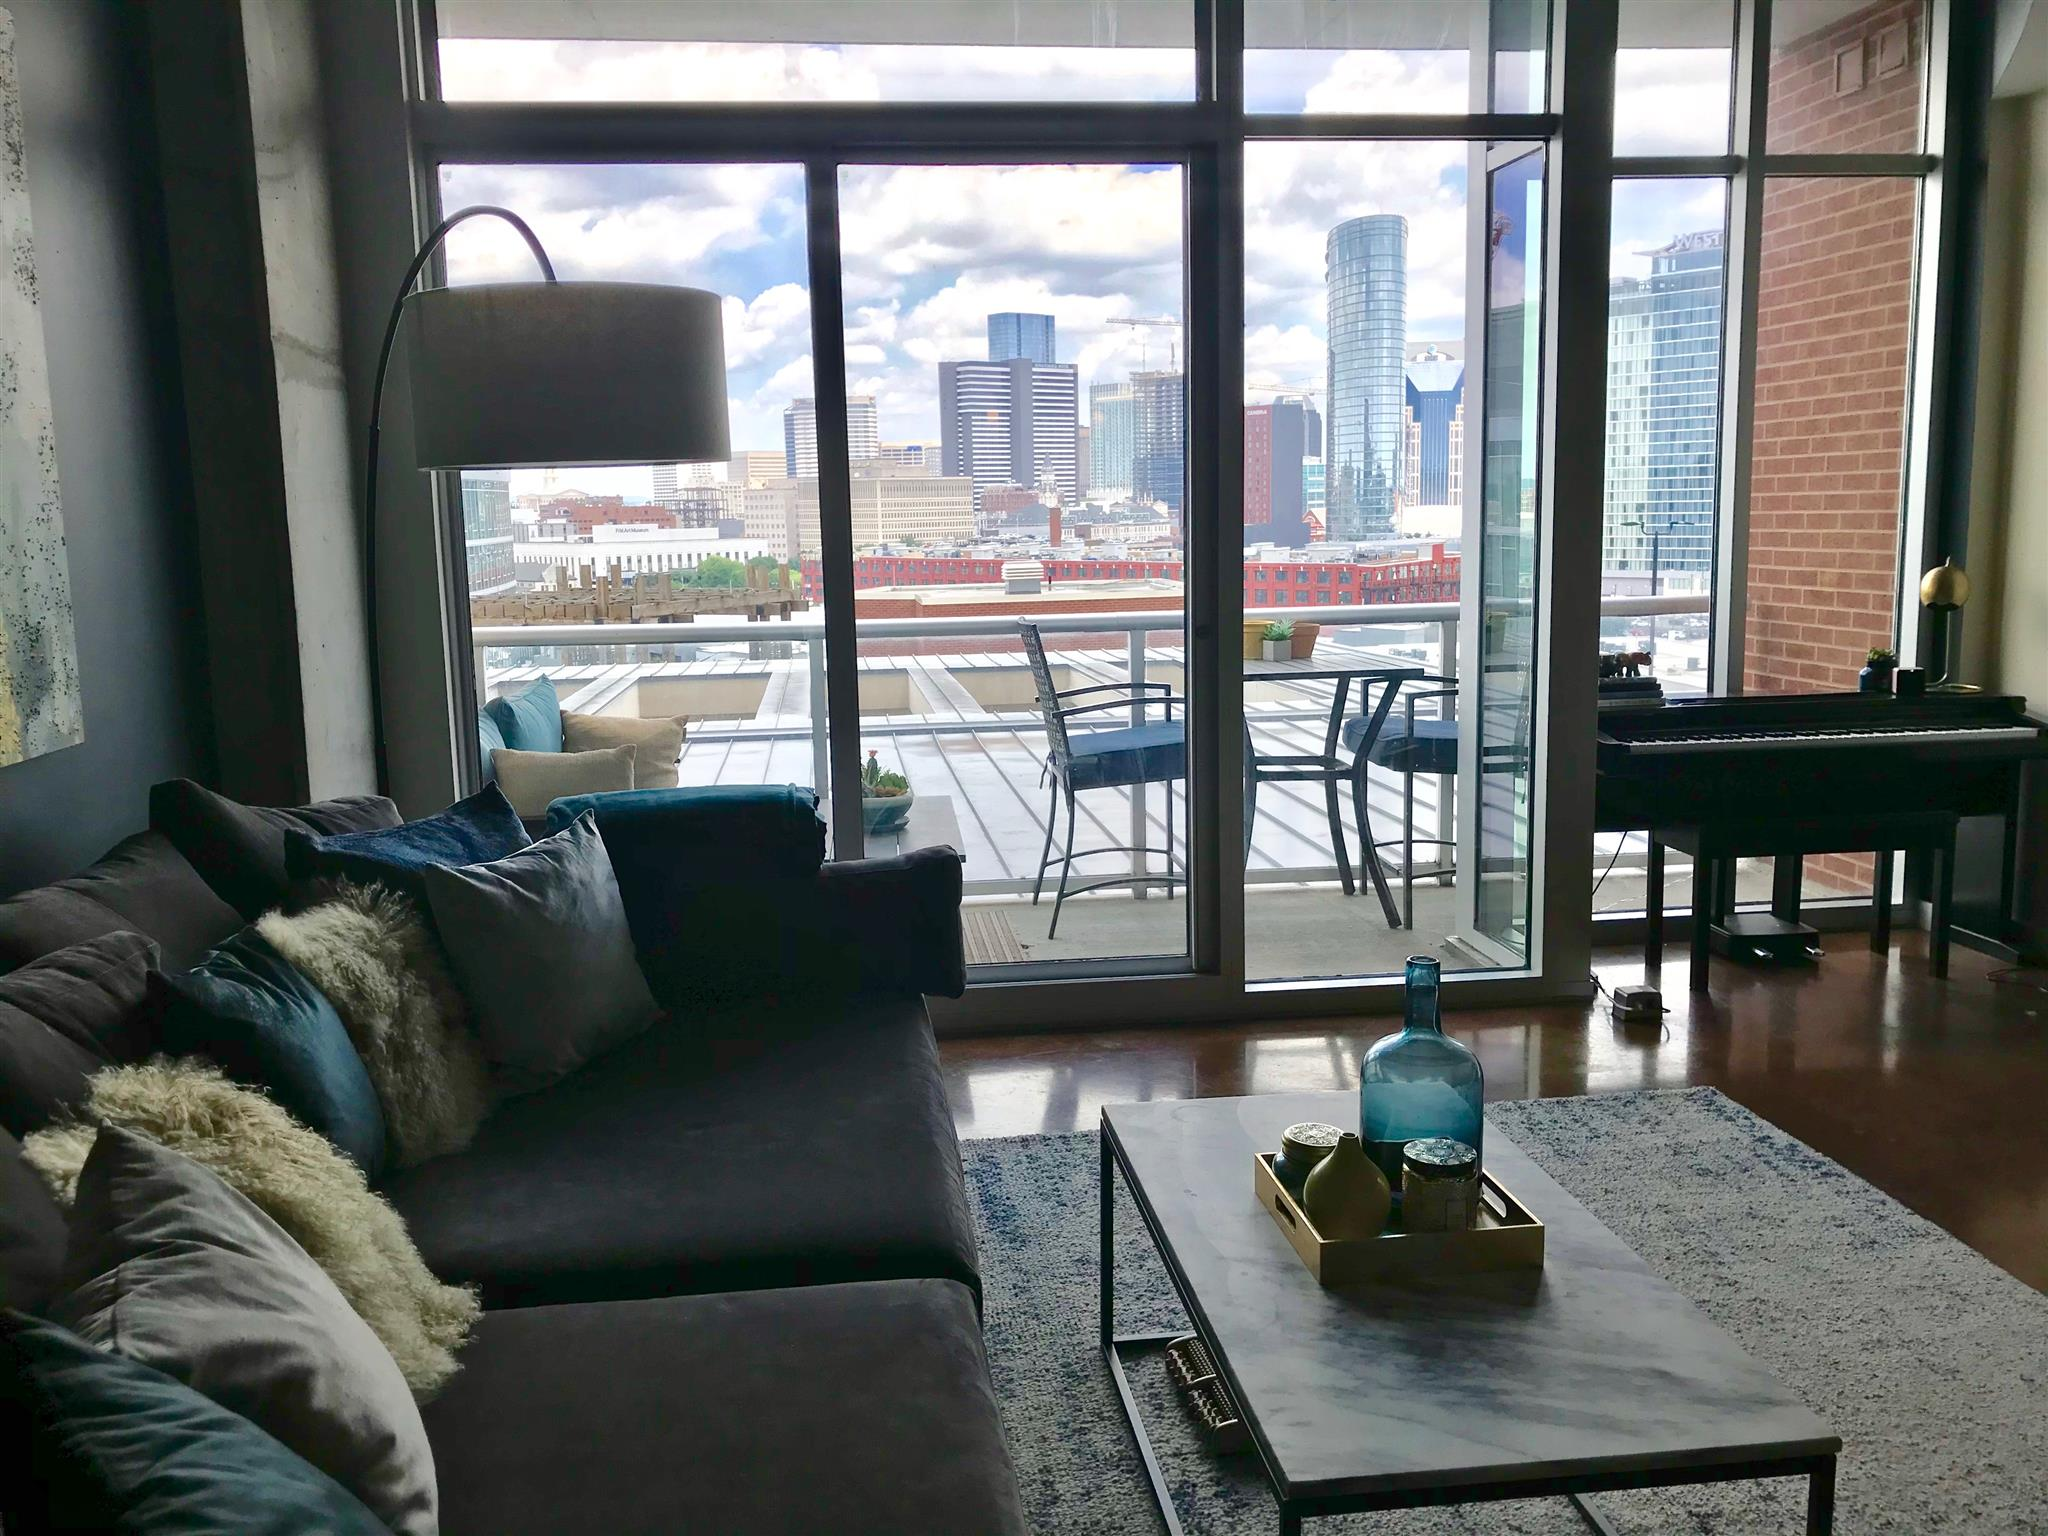 600 12Th Ave S Apt 1105, Nashville - Midtown in Davidson County County, TN 37203 Home for Sale